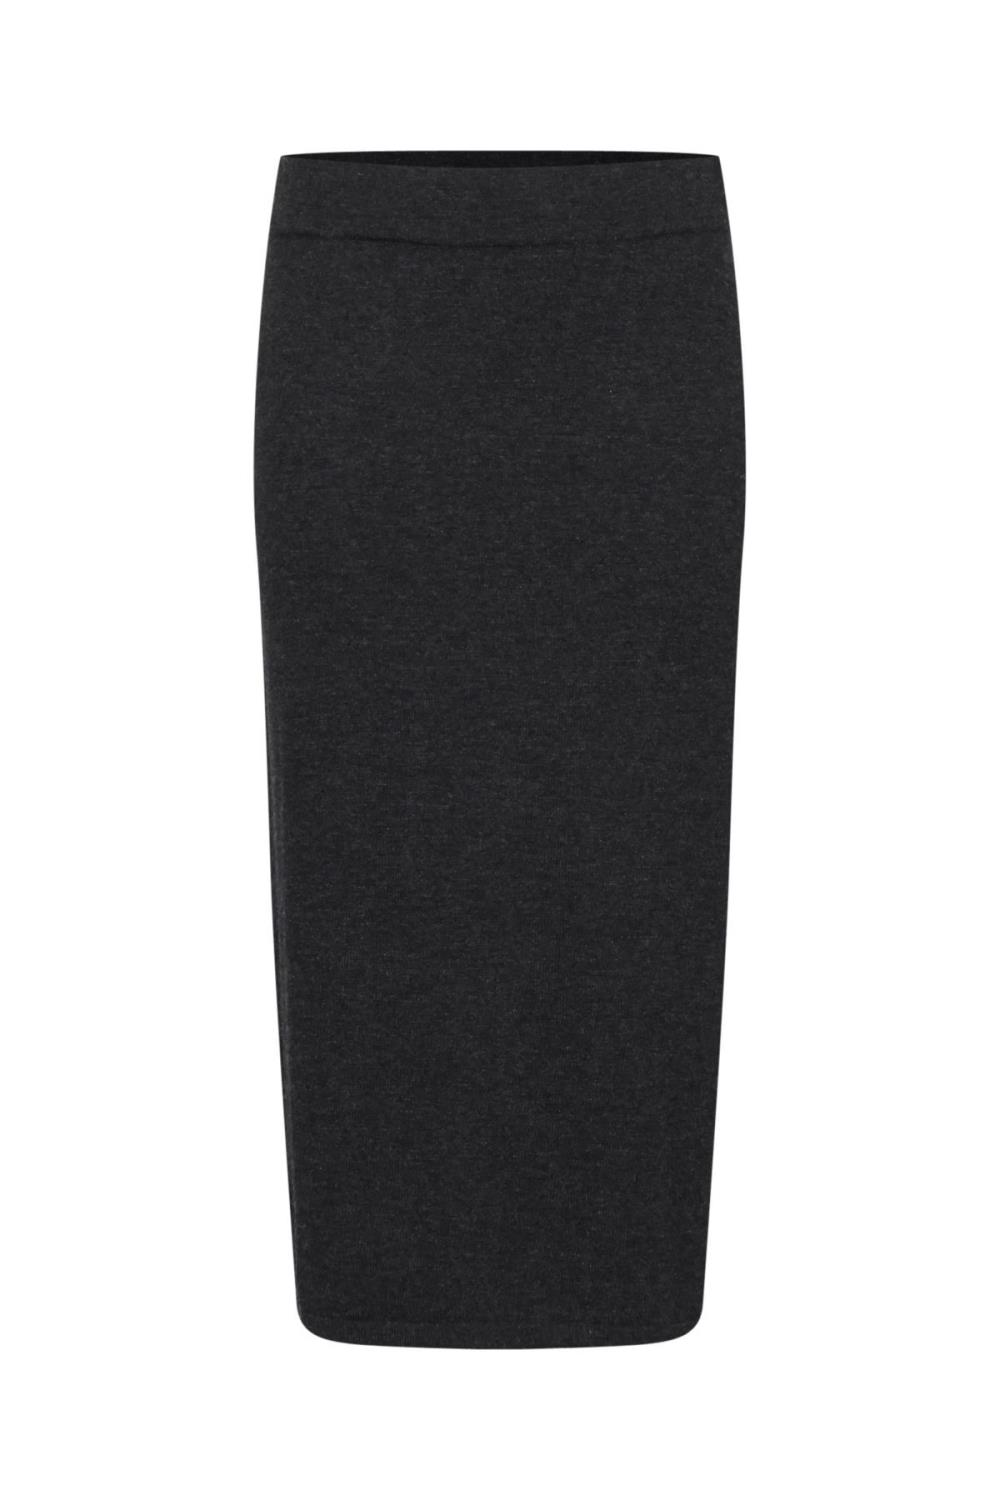 Pulz Nola skirt knit, dark grey melange